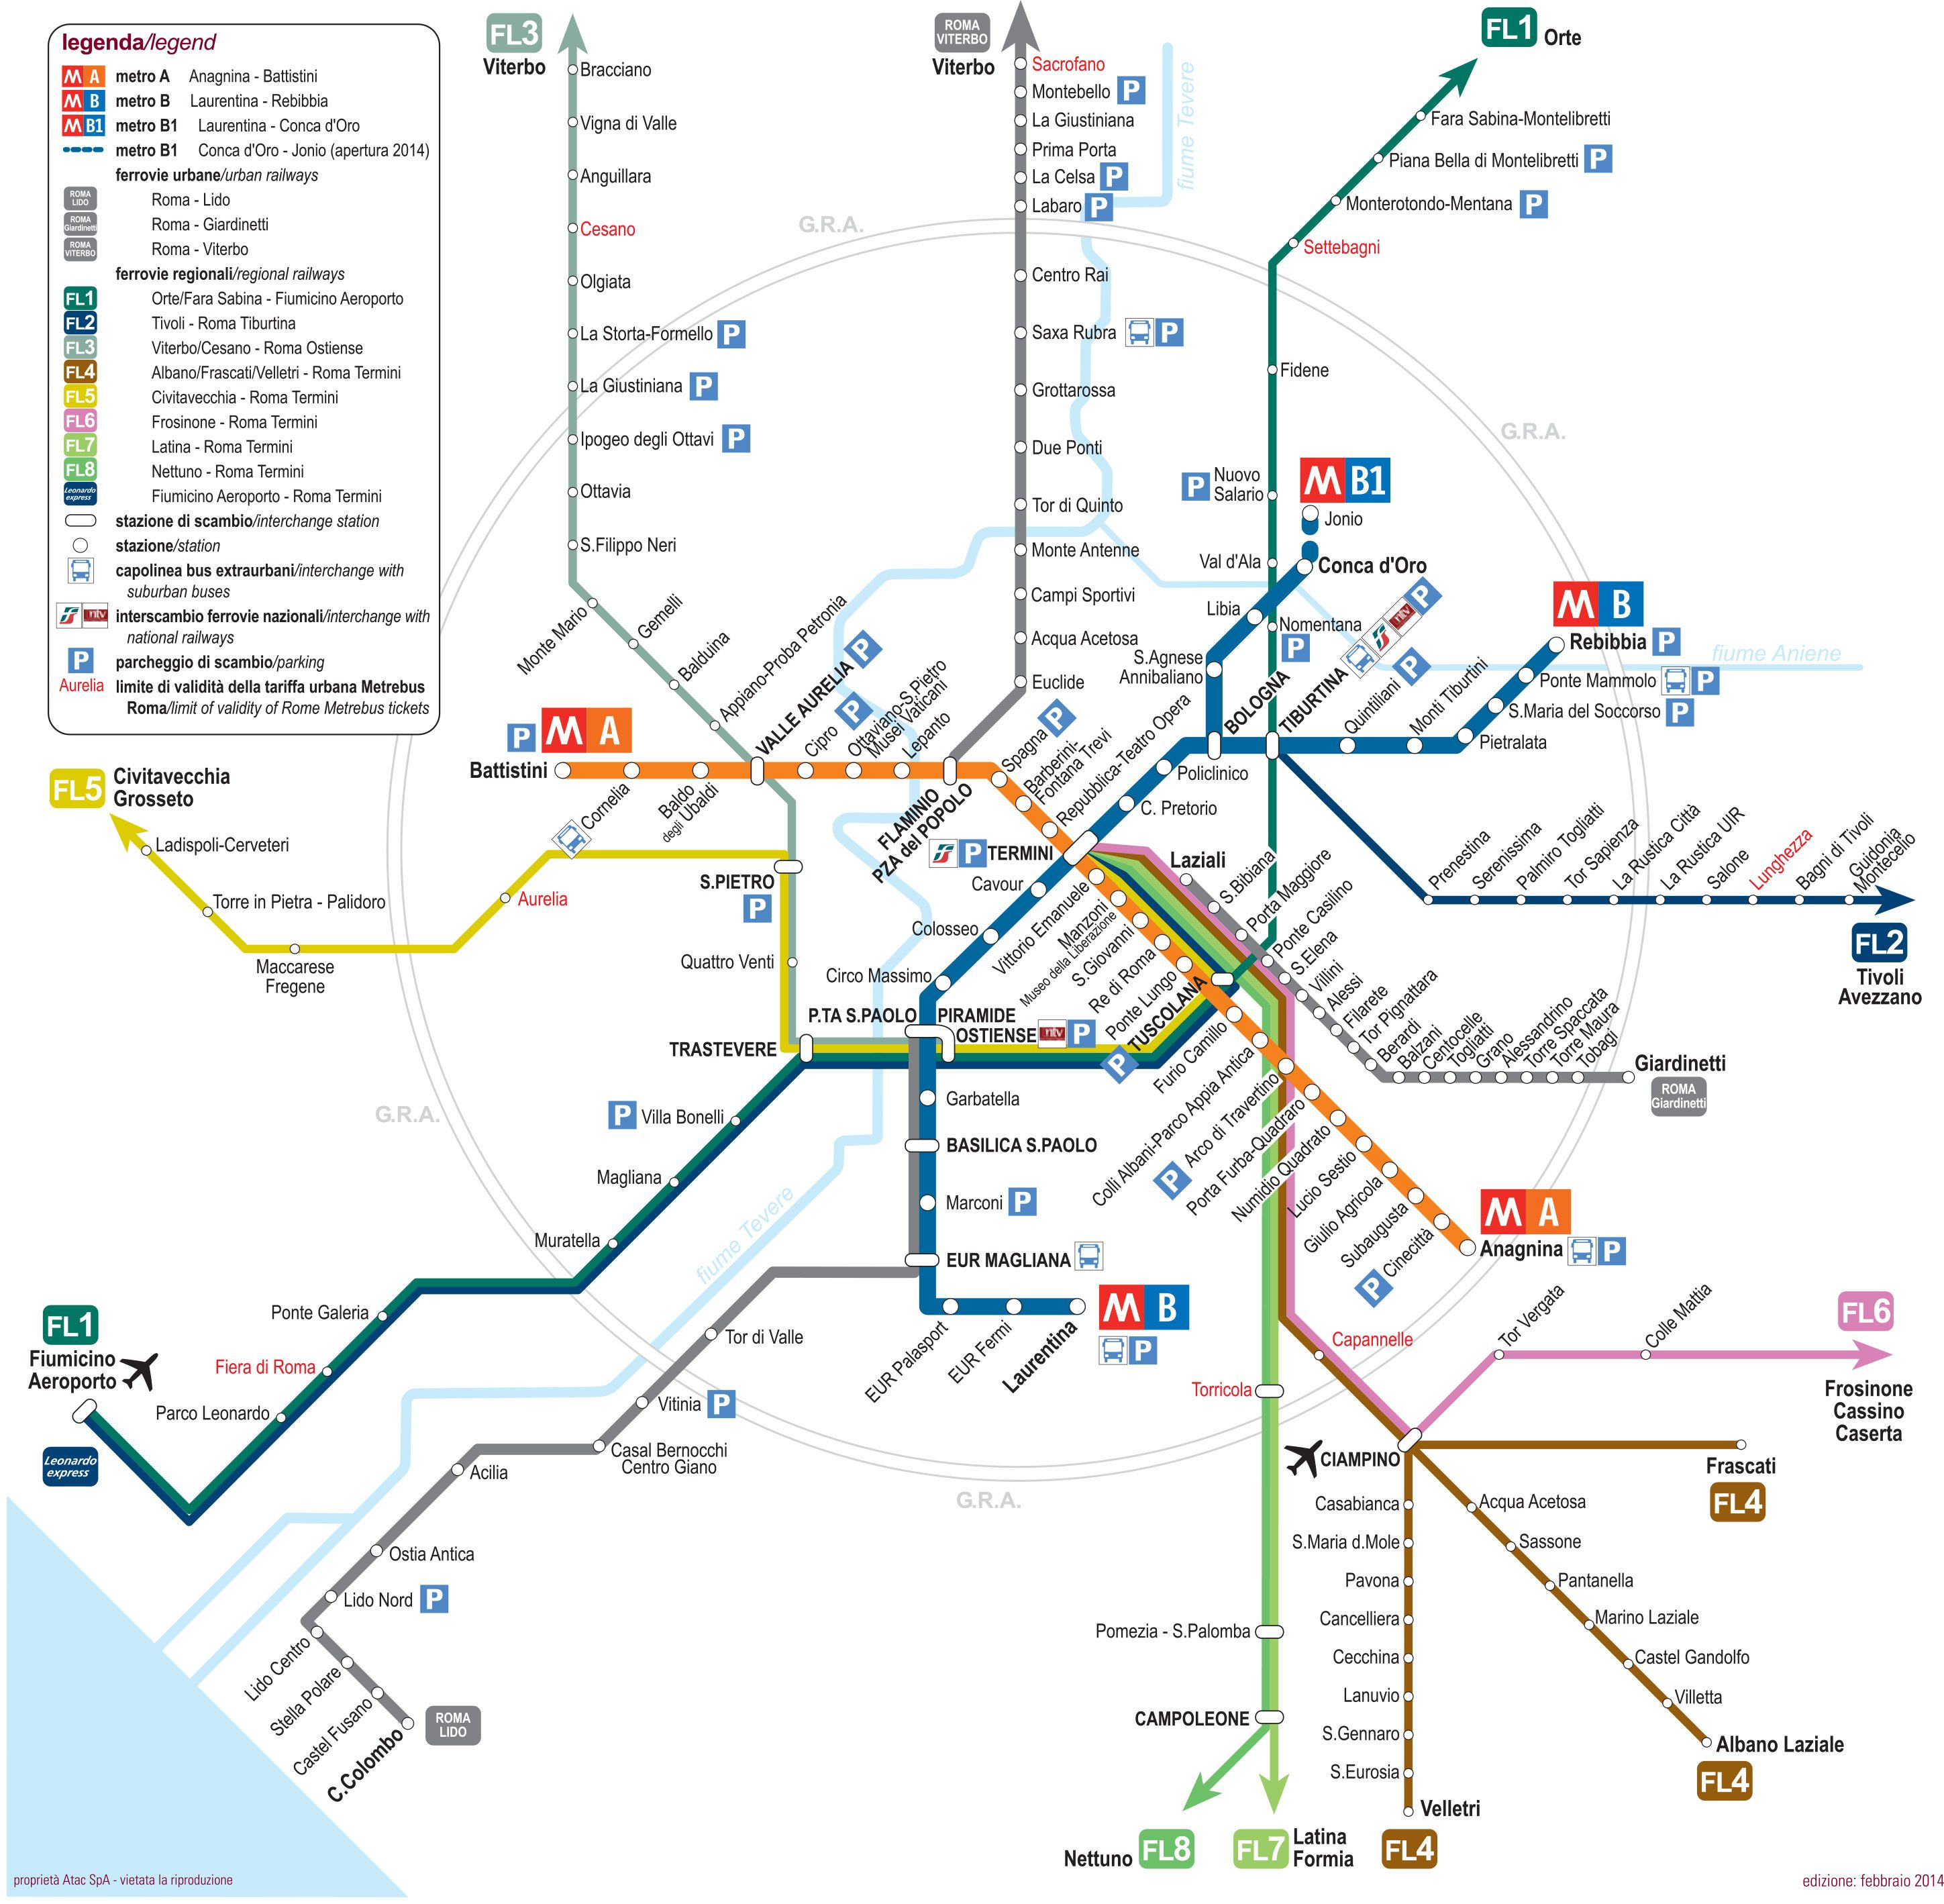 Singapore MRT System Map Looking Into The Future Information - Argentina rail network map